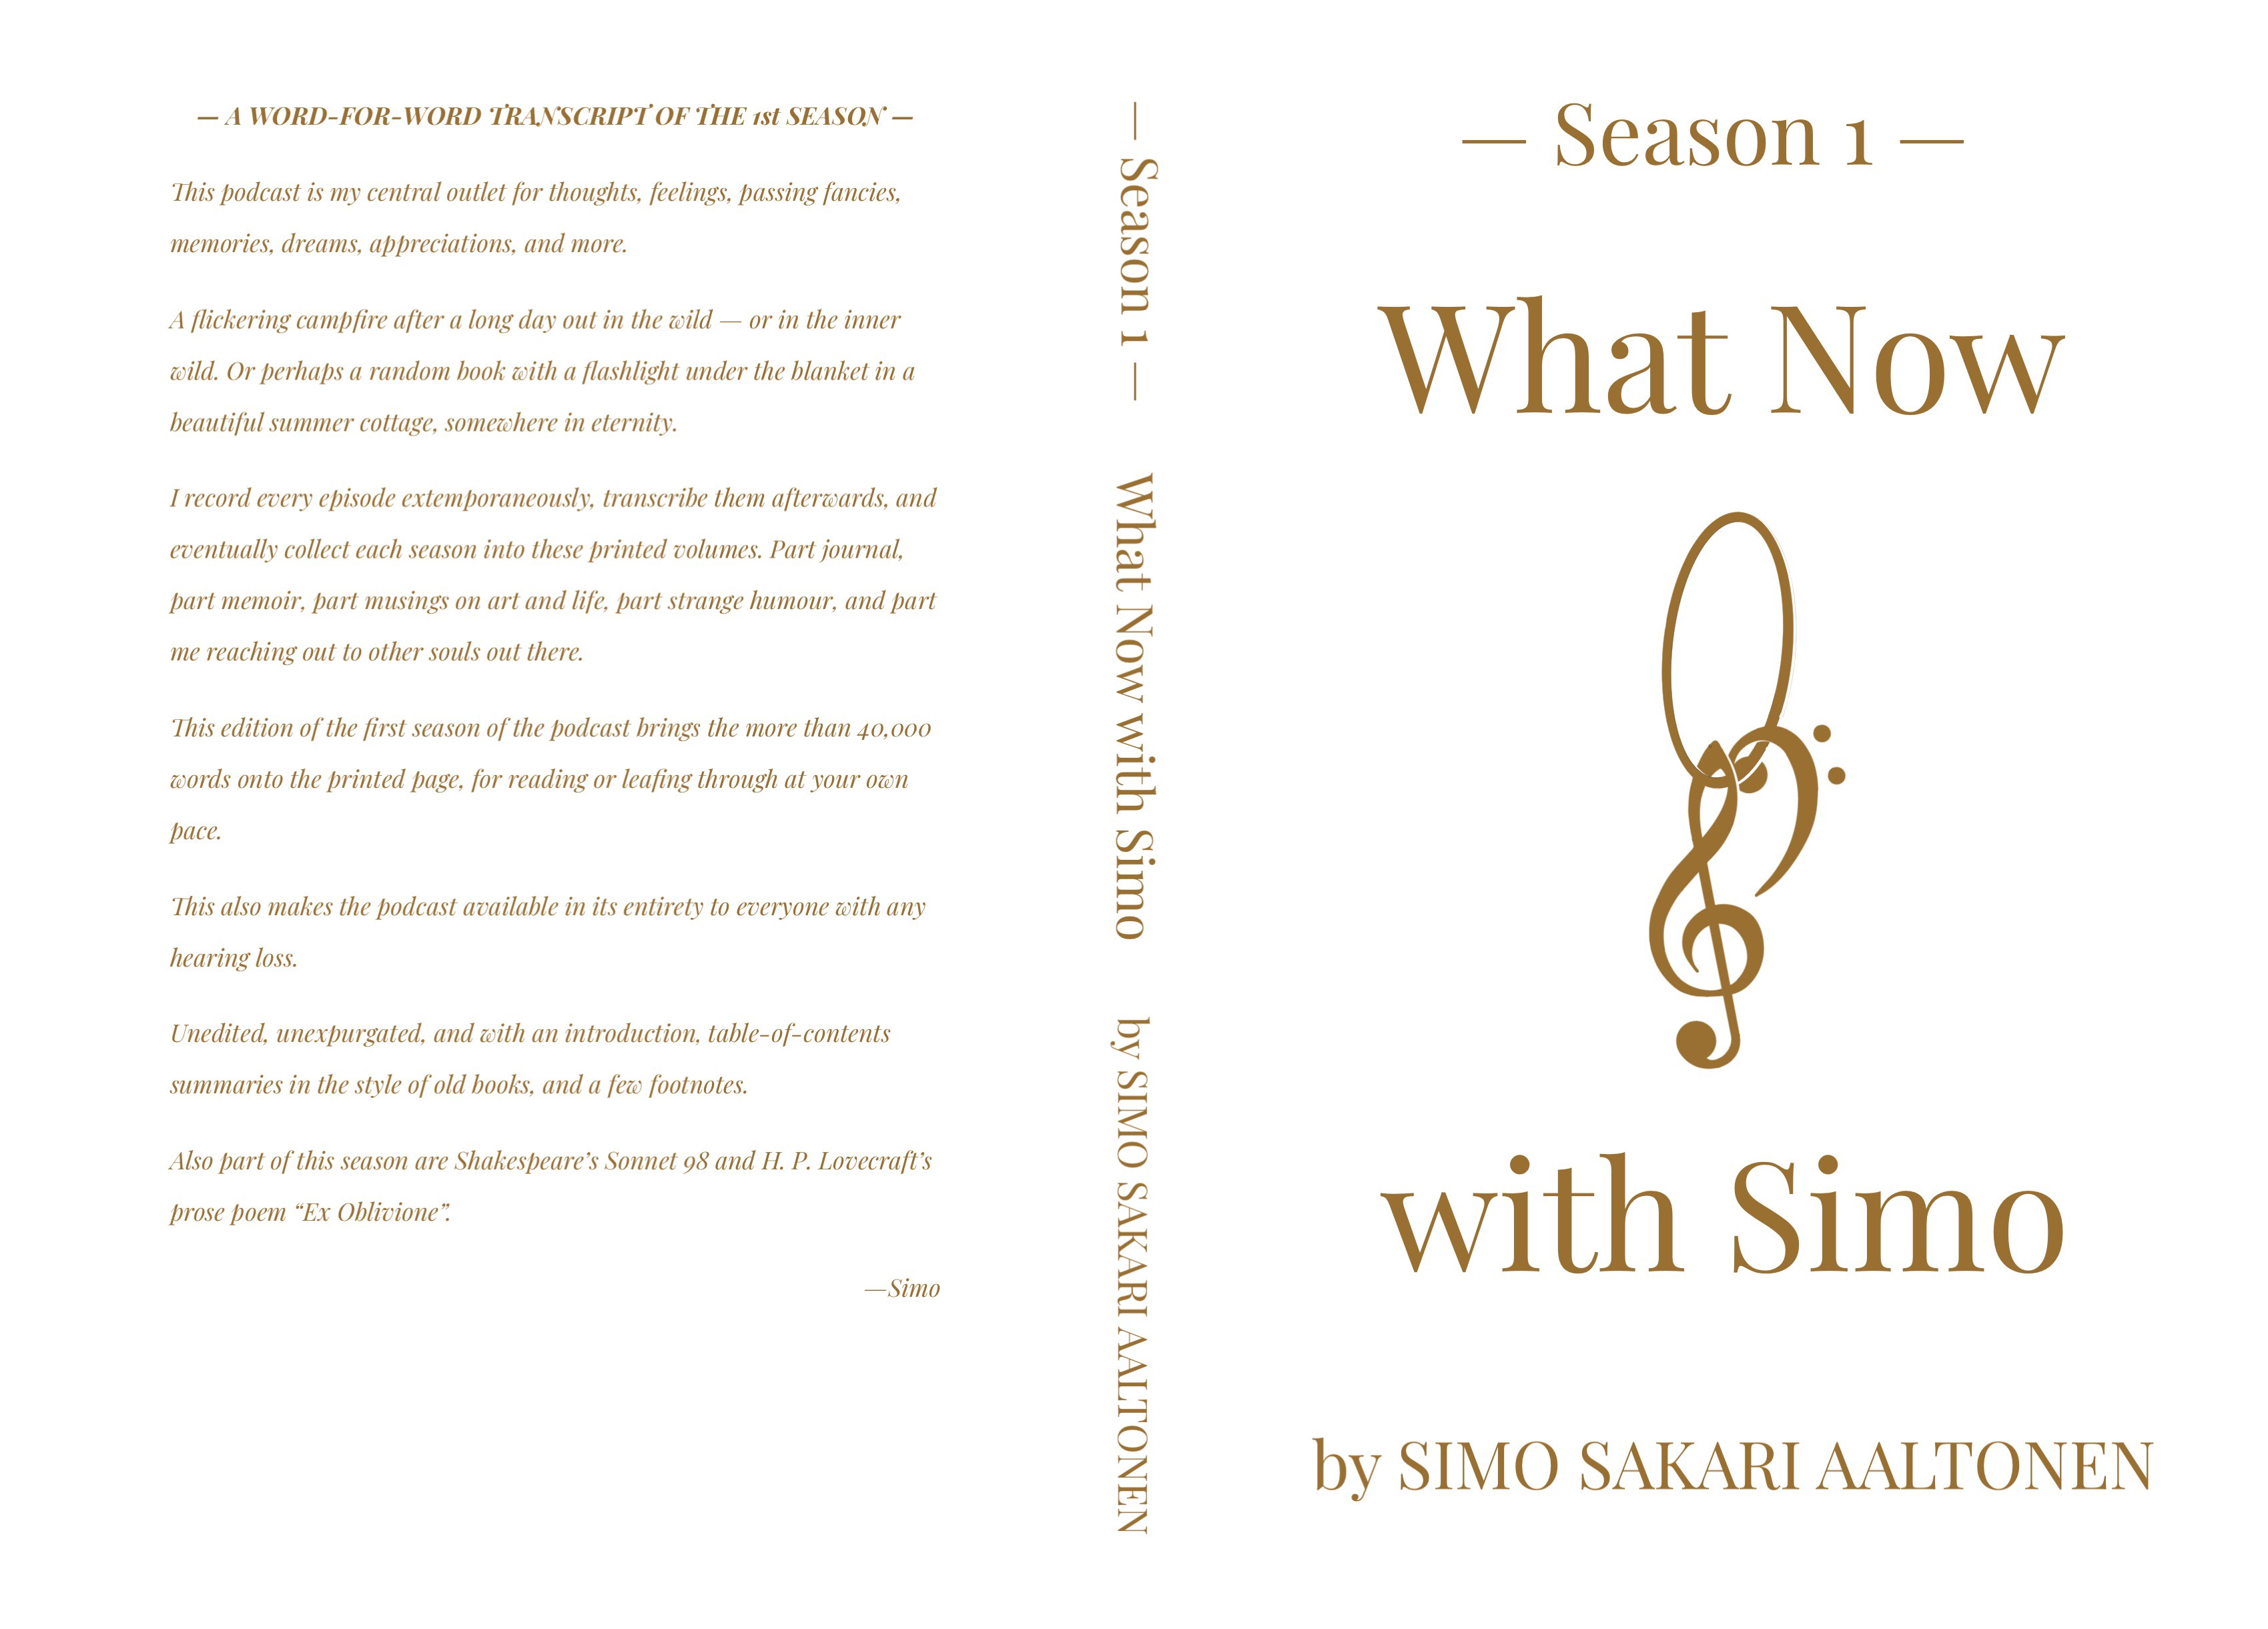 The covers for the book What Now with Simo, Season 1.